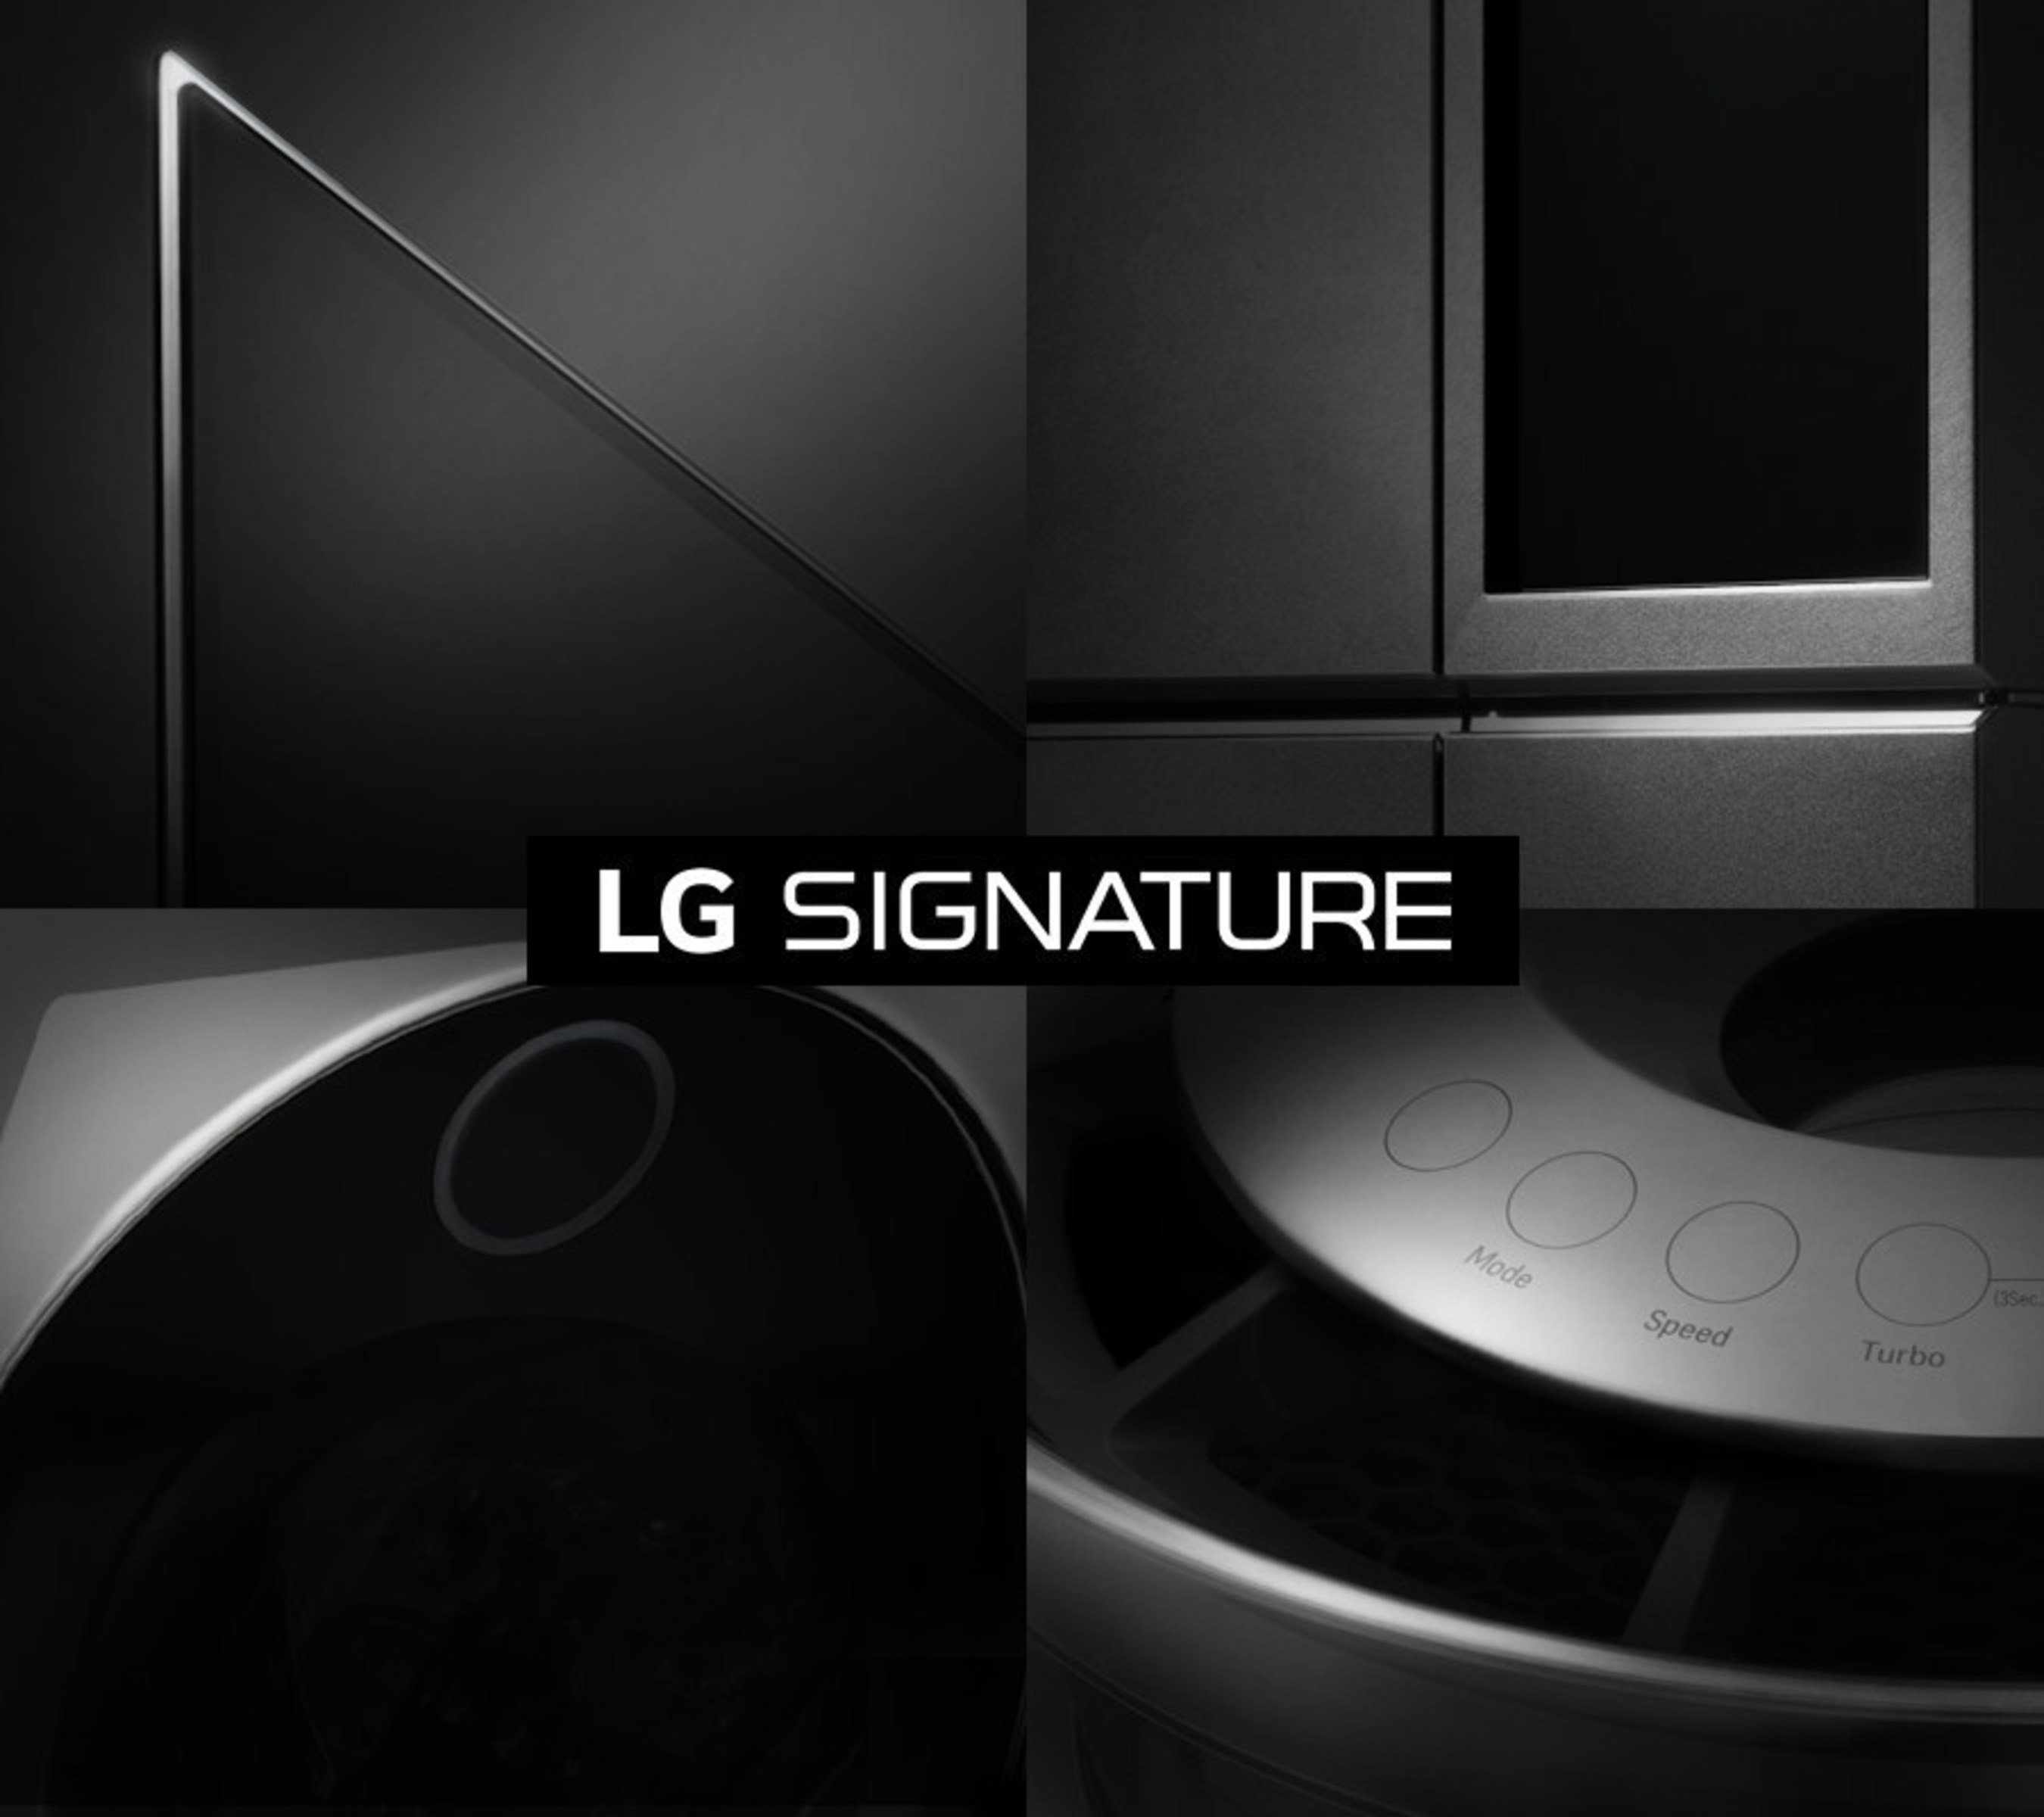 LG Electronics (LG) is planning to shake up the home entertainment and appliance market with the launch of its new, premium LG SIGNATURE lineup at CES 2016 initially including a television, refrigerator, washing machine and air purifier.